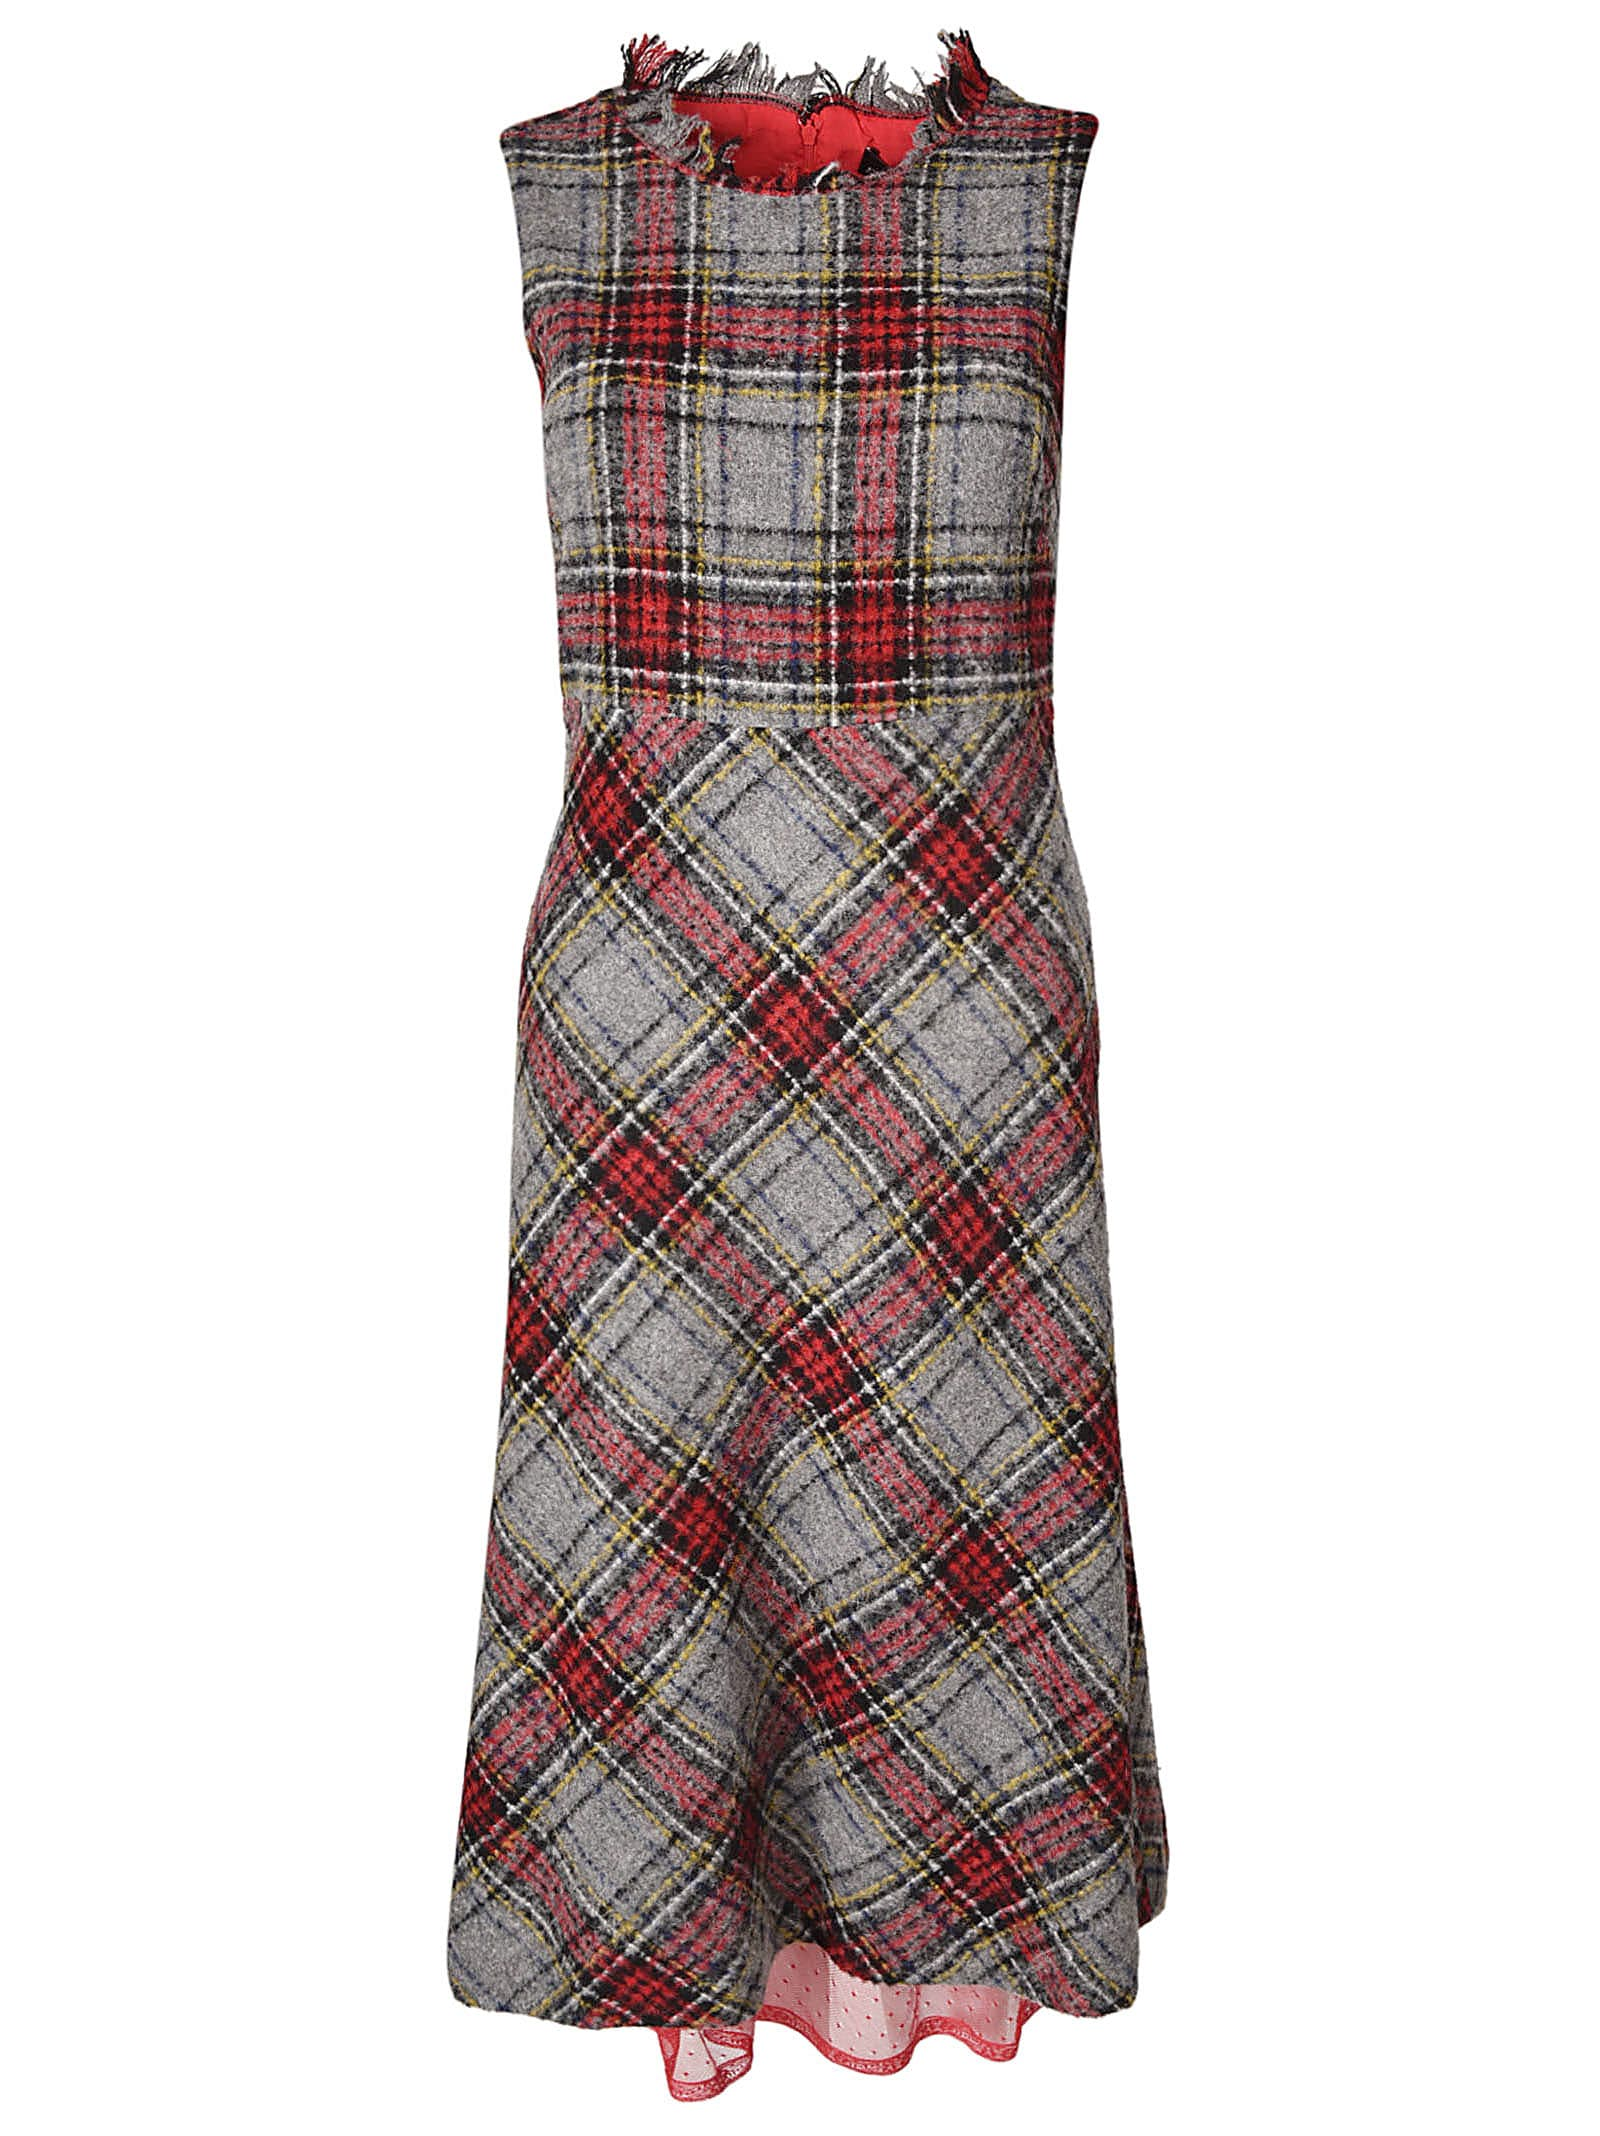 Ermanno Ermanno Scervino Checked Dress